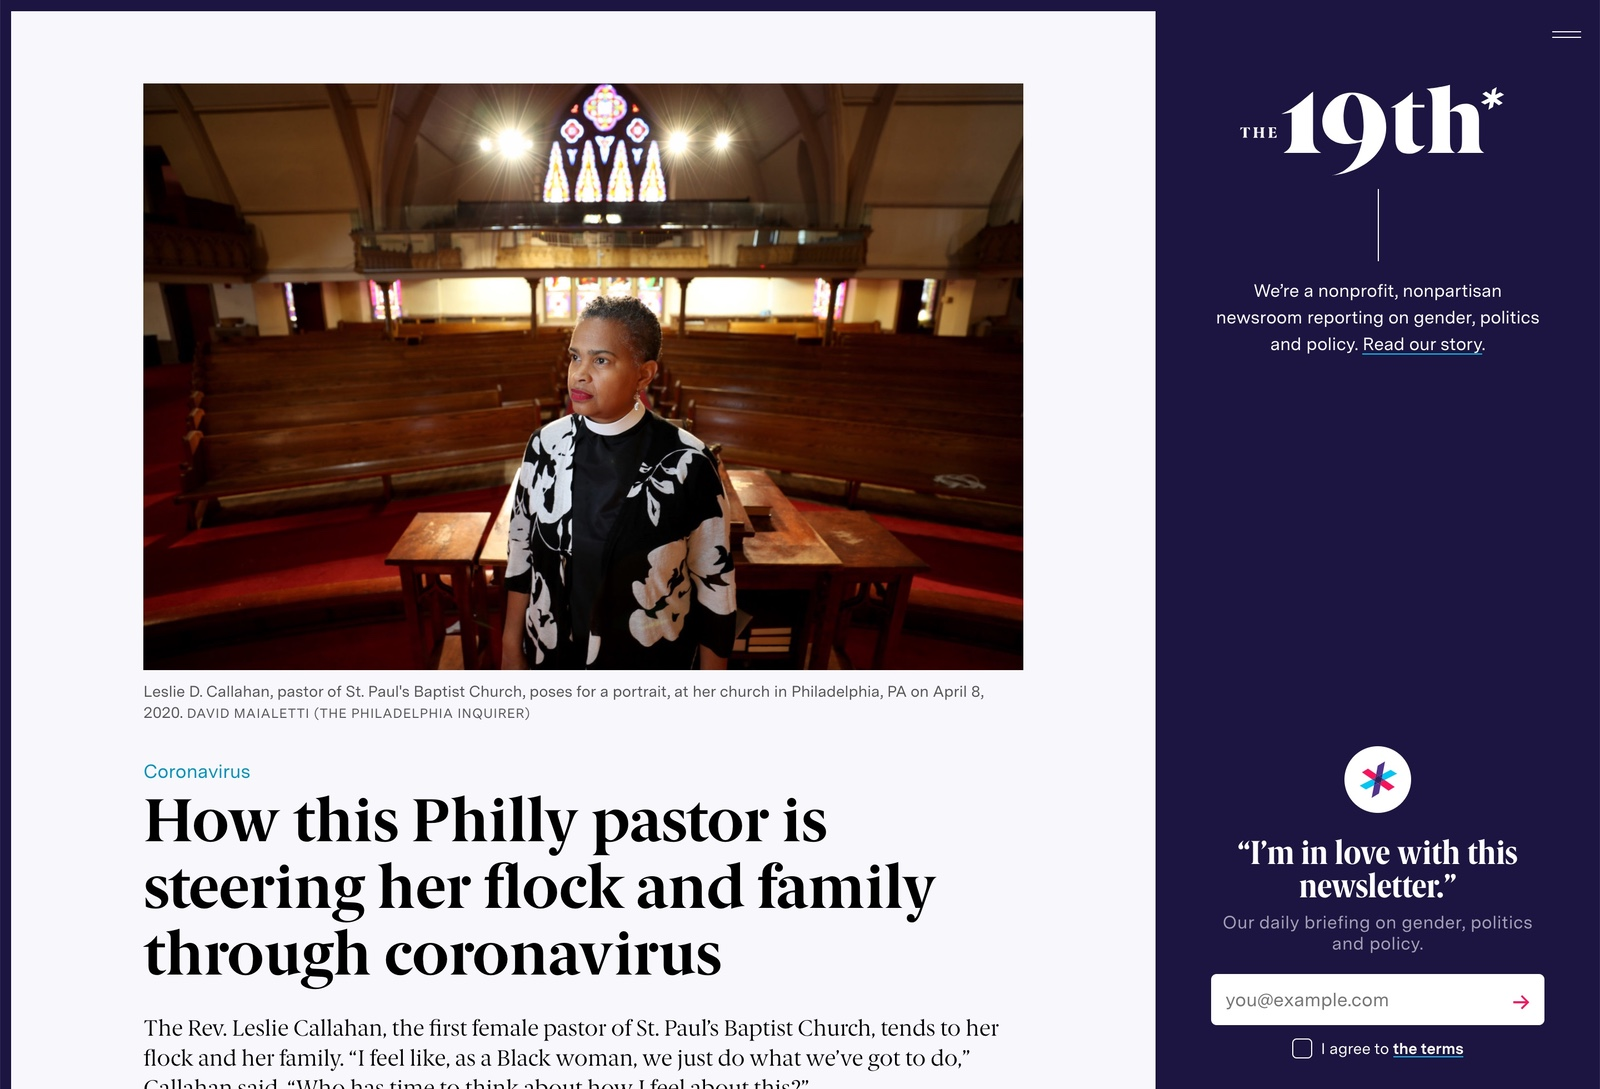 Article: How this Philly pastor is steering her flock and family through coronavirus